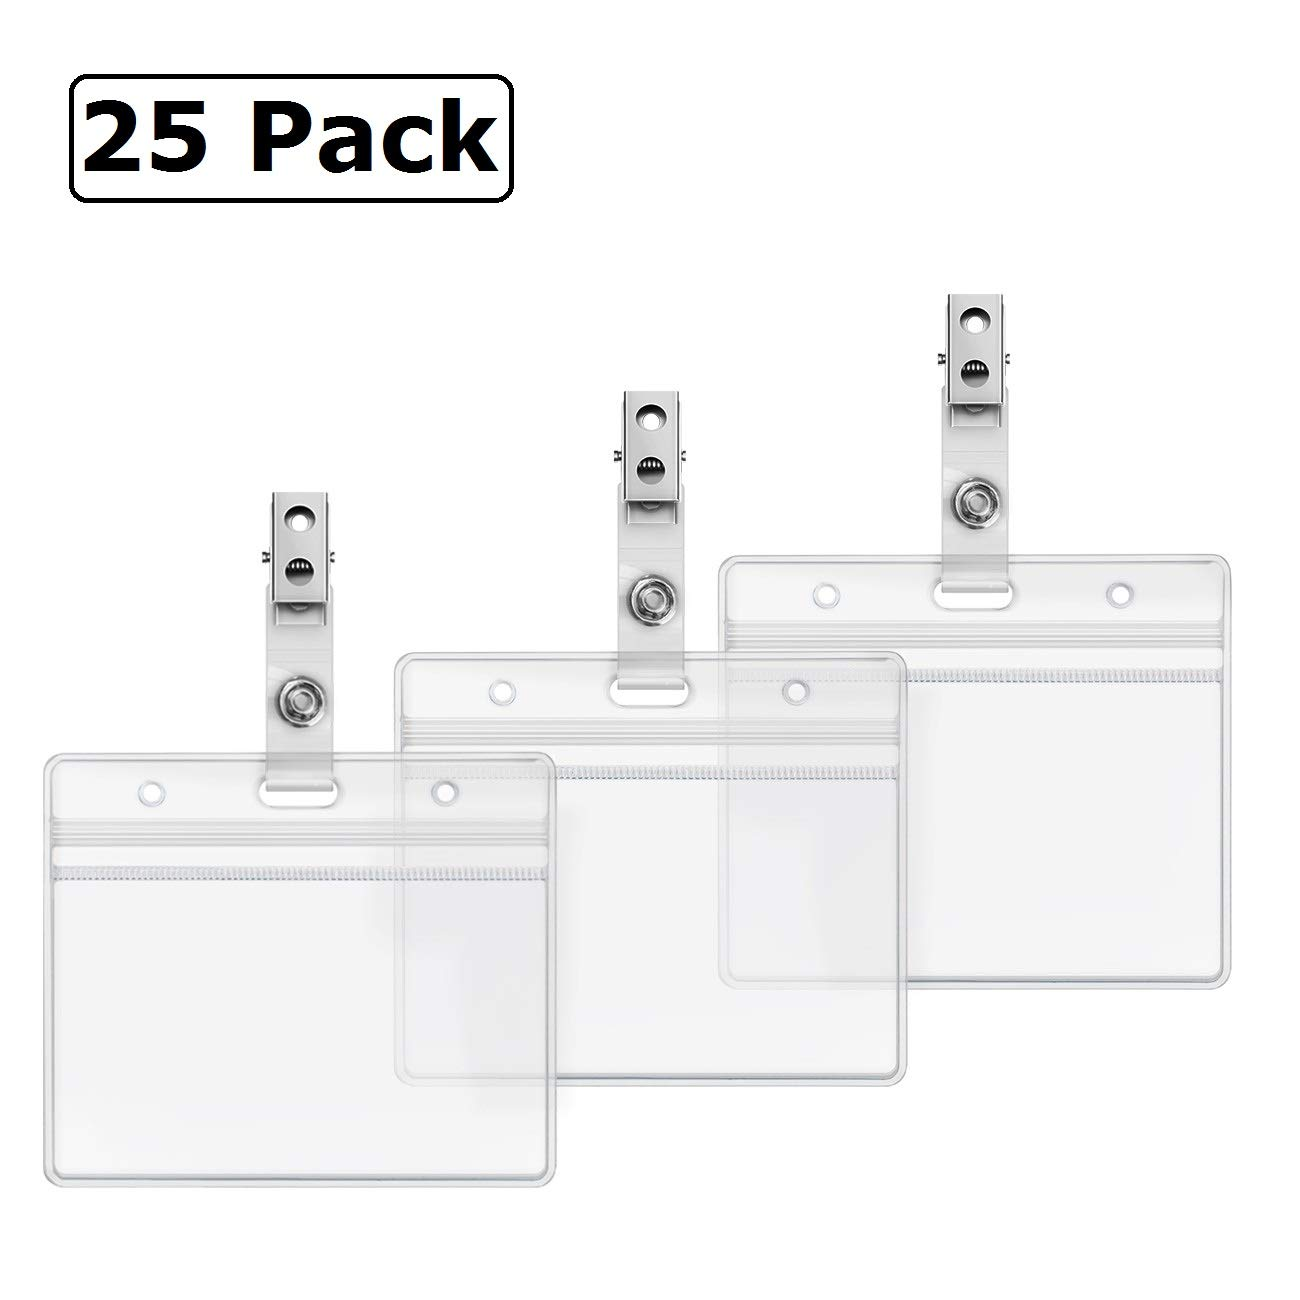 ID Badge Holder with Clip Clear Plastic Name Tag Holders Horizontal Ziplock  Waterproof PVC ID Card Holder with Clip Straps by ZHEGUI (25 Pack,